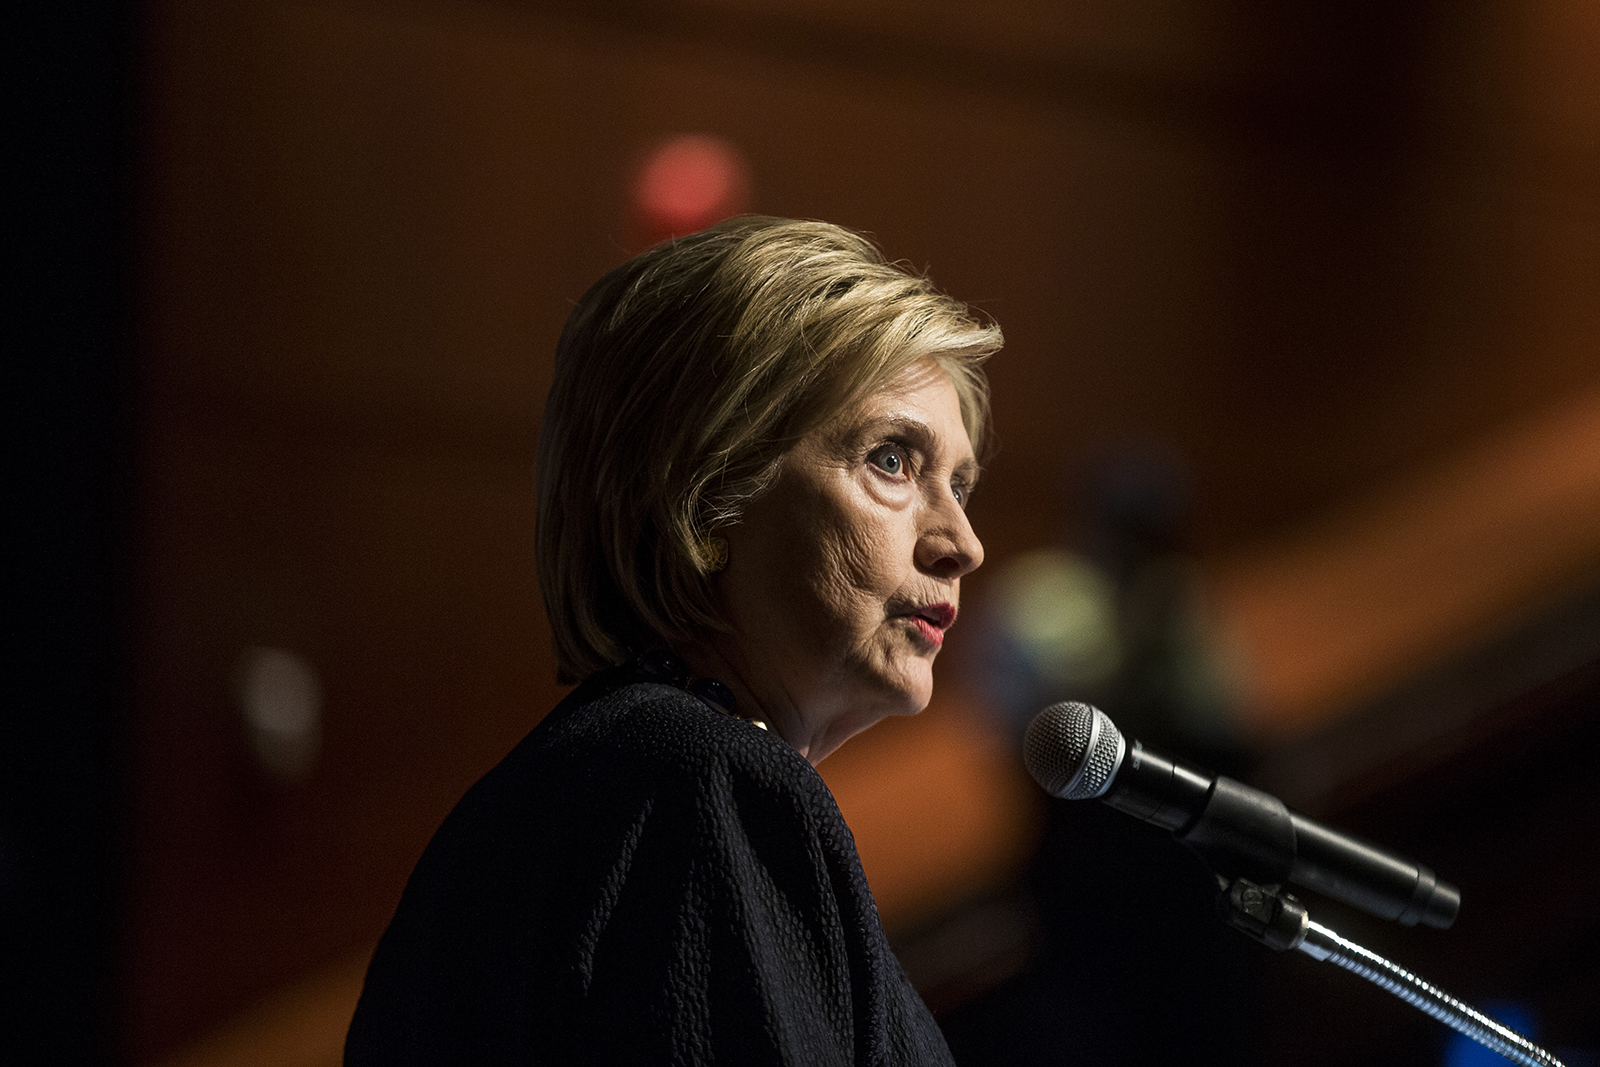 Former Secretary of State Hillary Clinton delivers a keynote speech during the American Federation of Teachers Shanker Institute Defense of Democracy Forum at George Washington University on September 17, 2019 in Washington, DC.